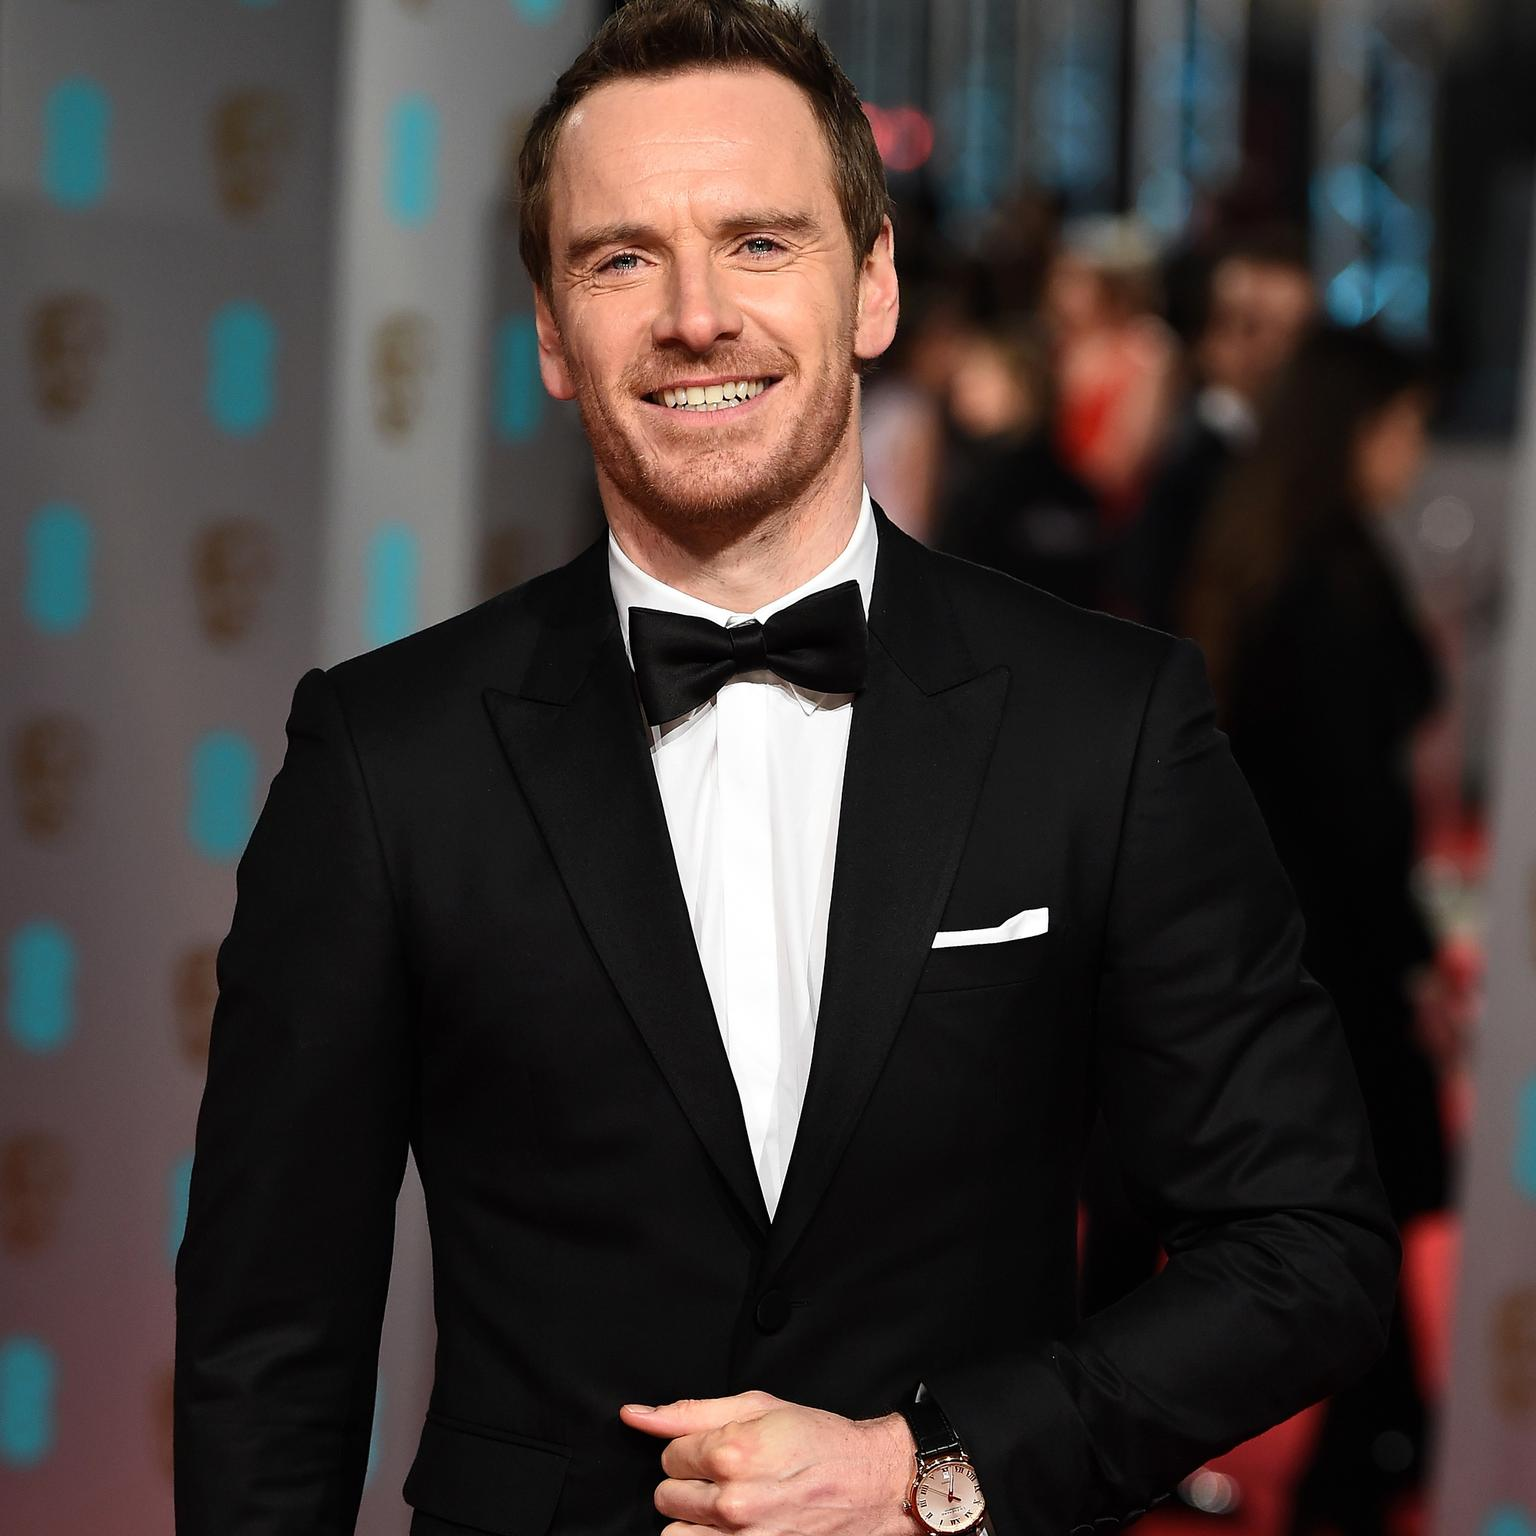 Michael Fassbender wears Chopard to BAFTAs 2016